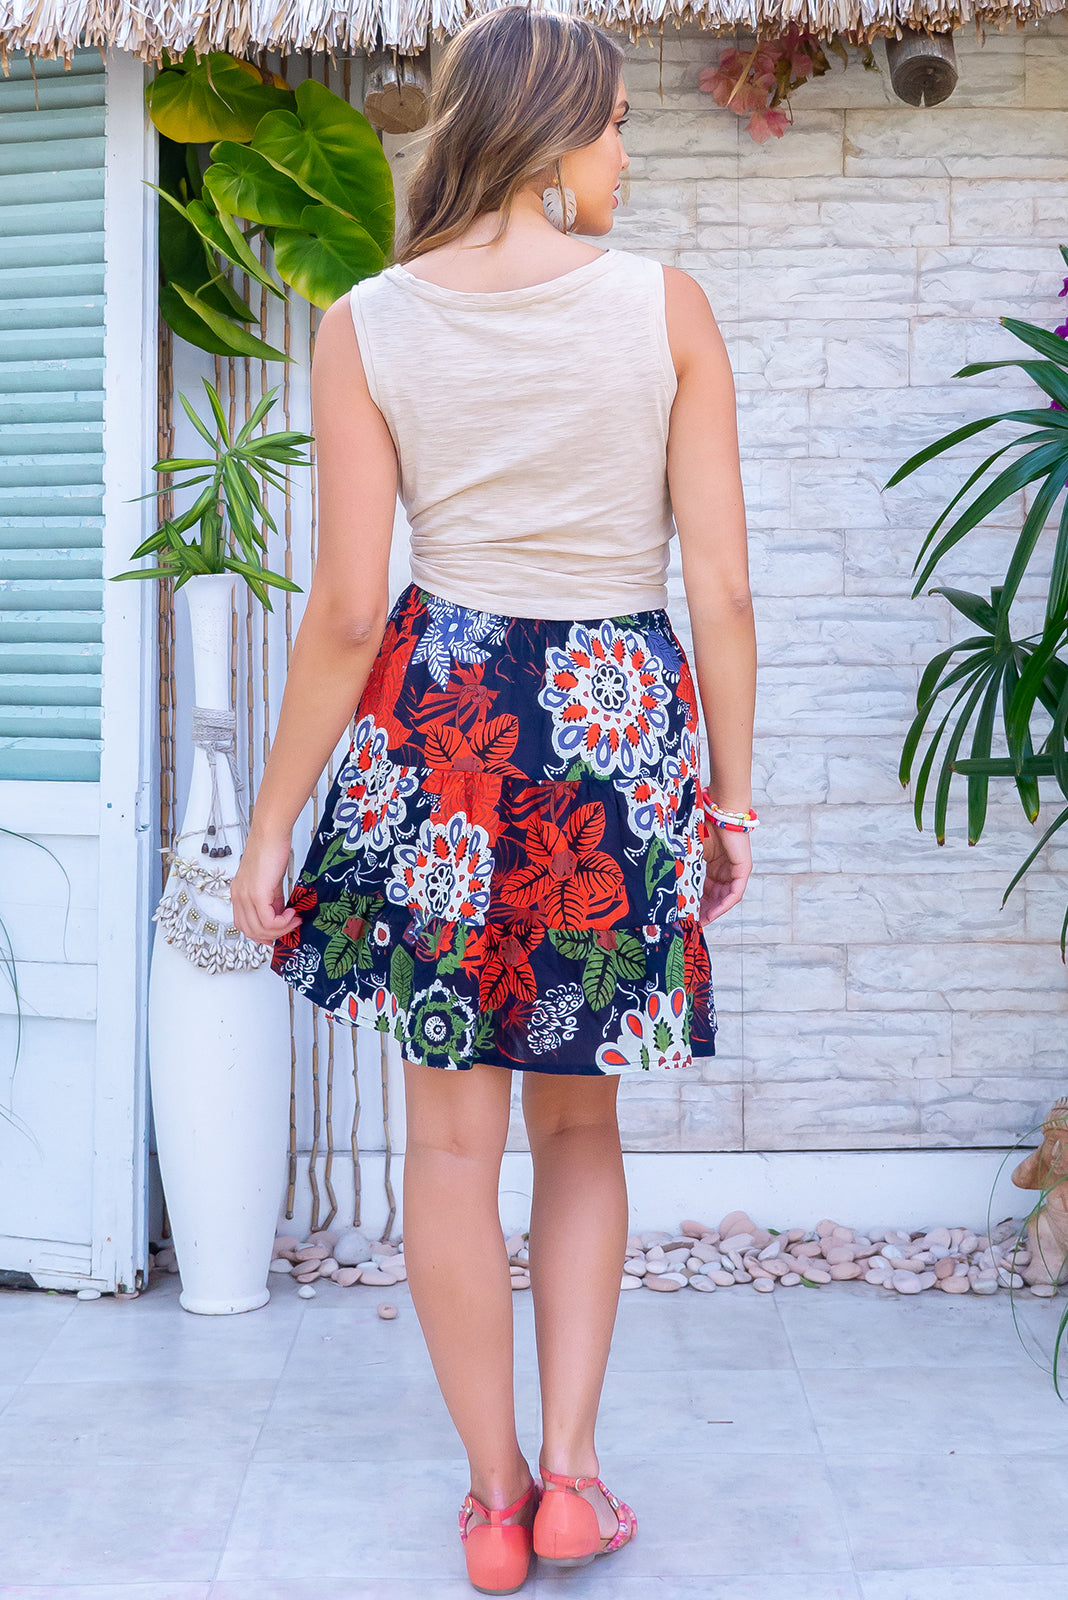 The Valencia Ankara Noir Mini Skirt is a comfortable pull-on style skirt featuring tiered for flirty fullness, side pockets and 100% cotton in ink base with large, bold print.